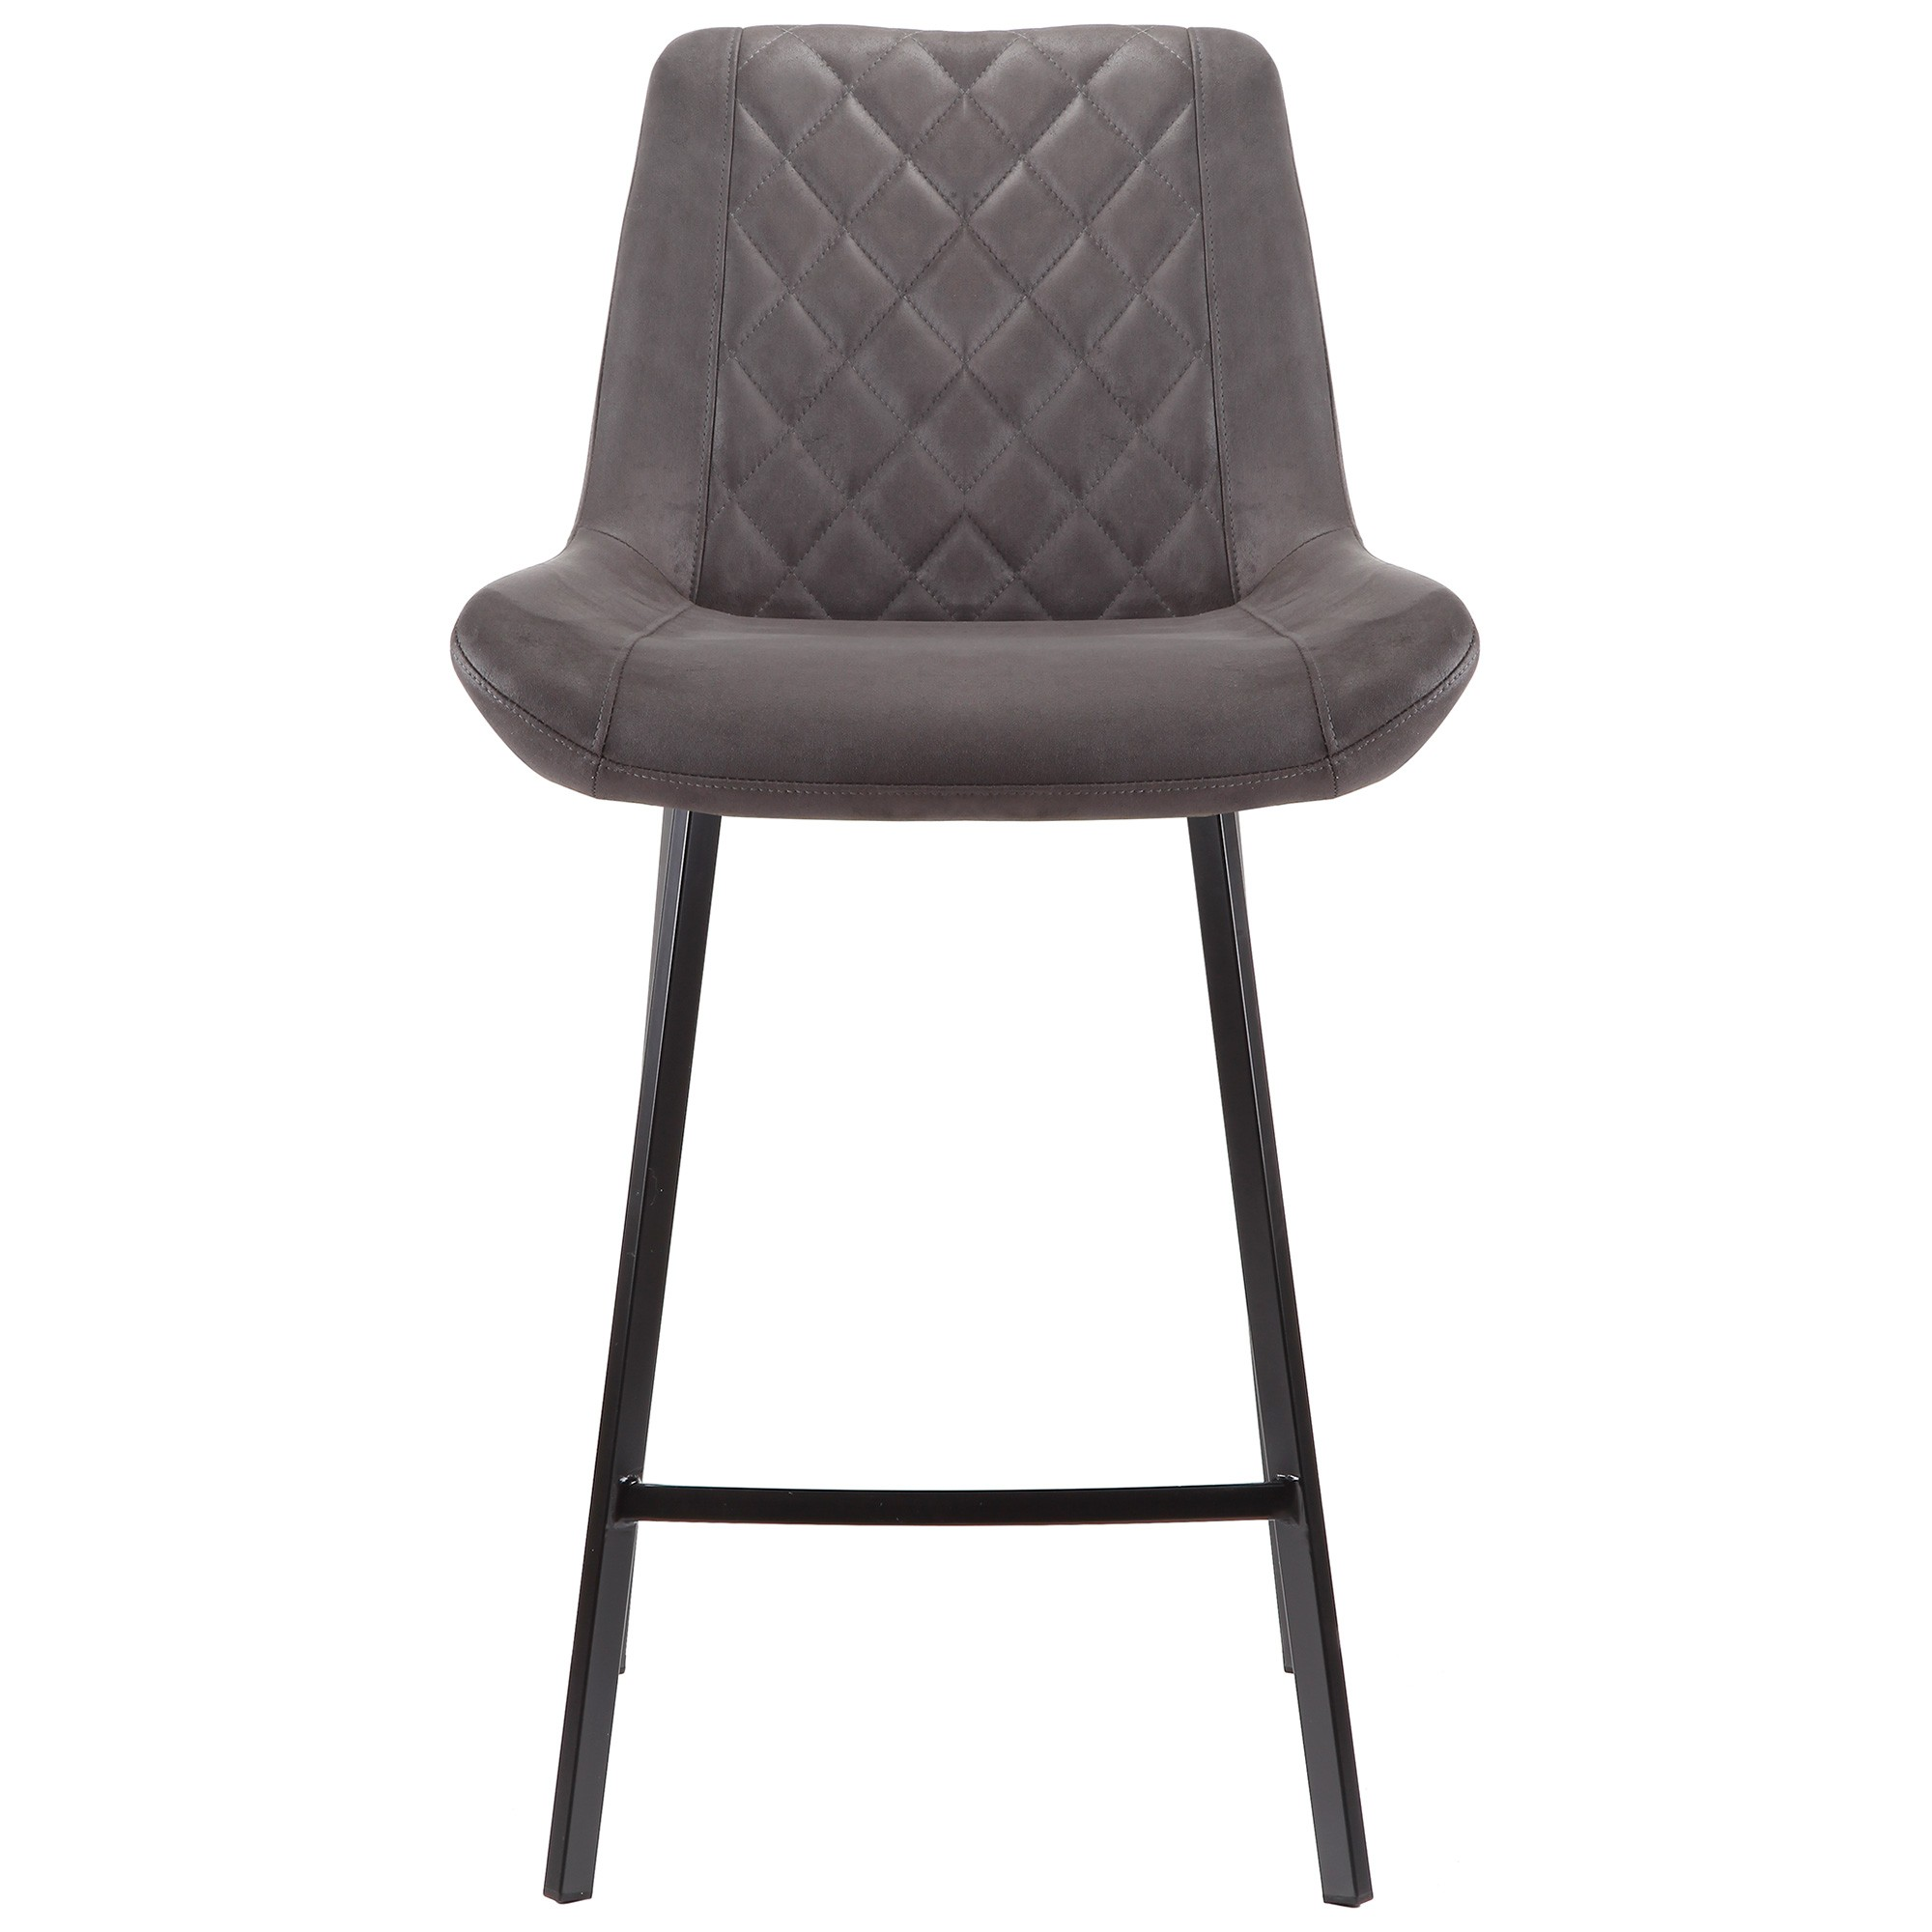 Syed Ultrasuede Fabric Counter Stool, Charcoal